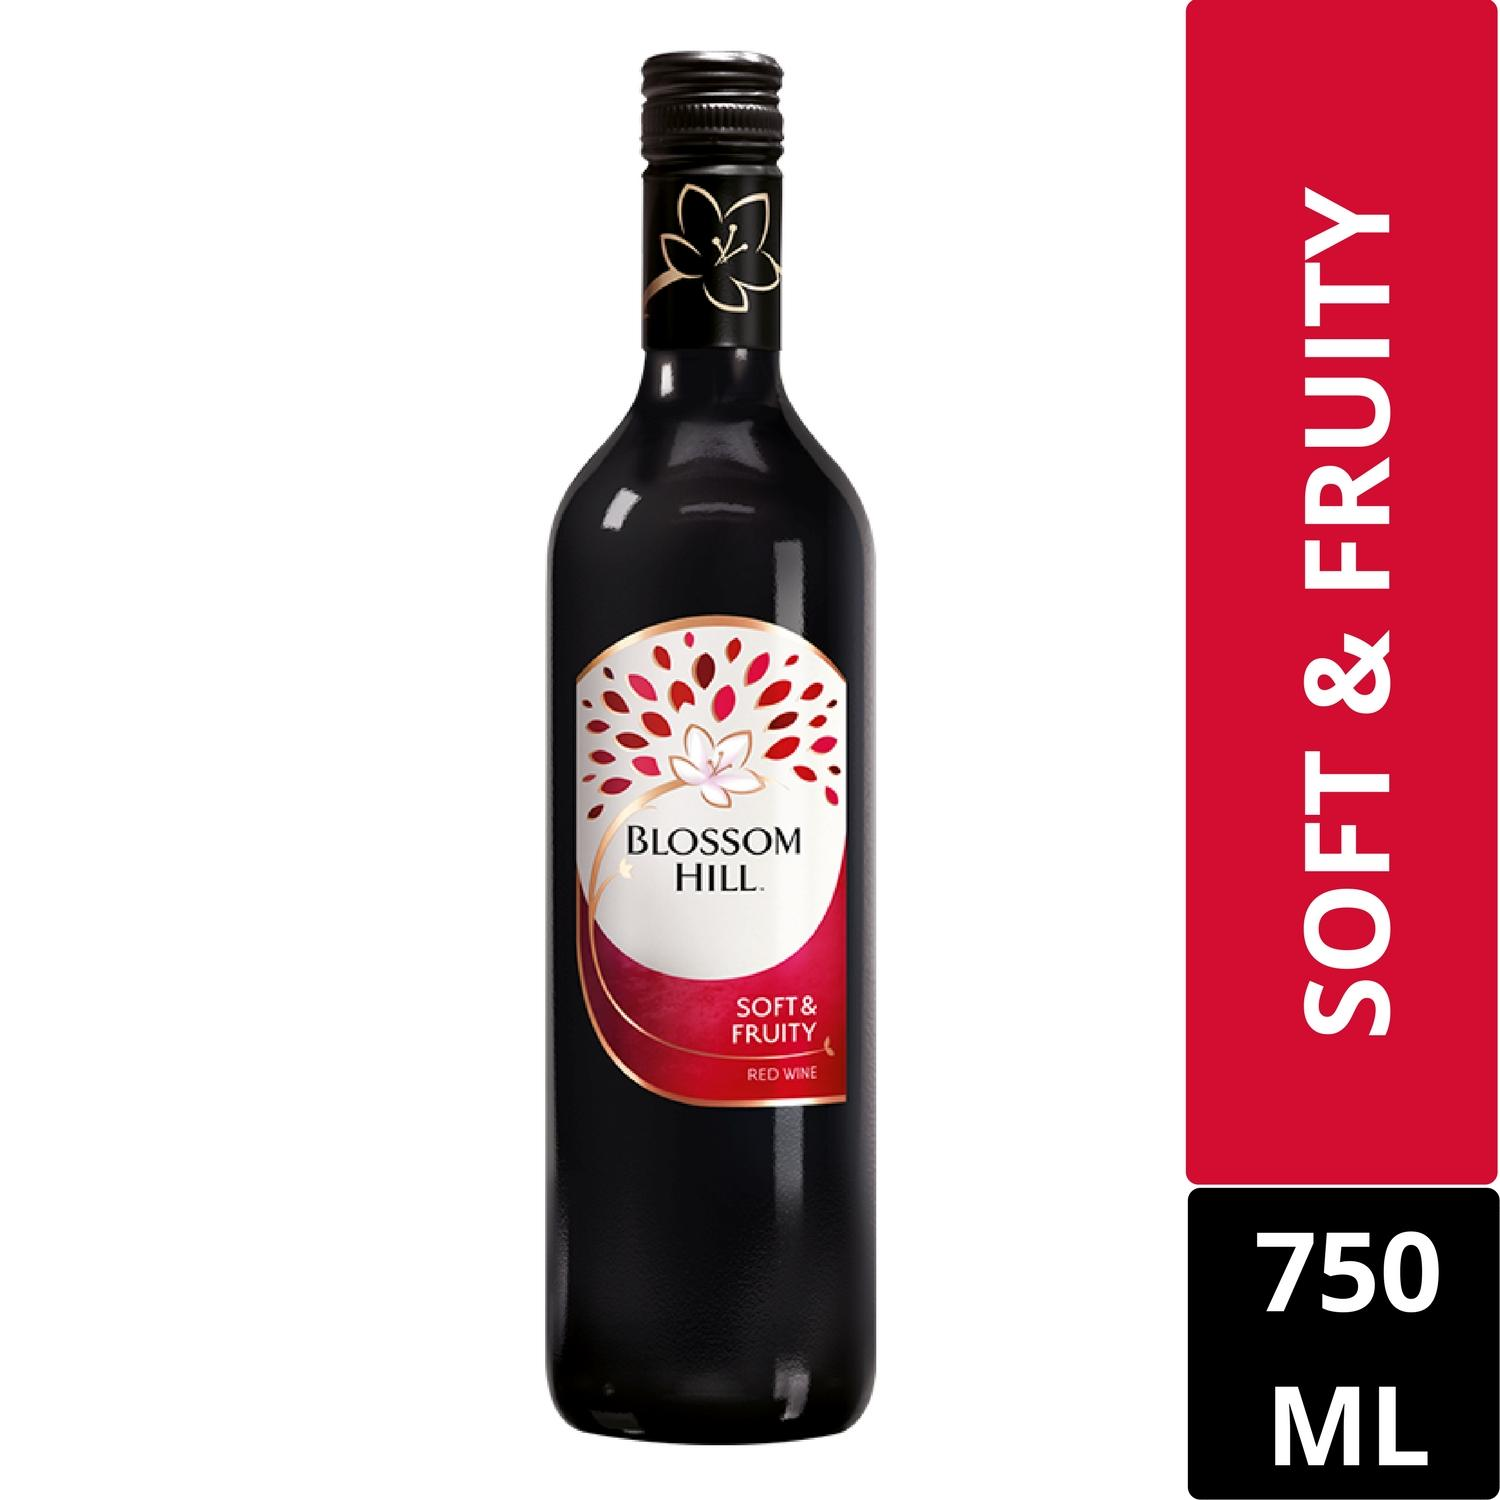 New Blossom Hill Soft Fruity Red Wine 750Ml